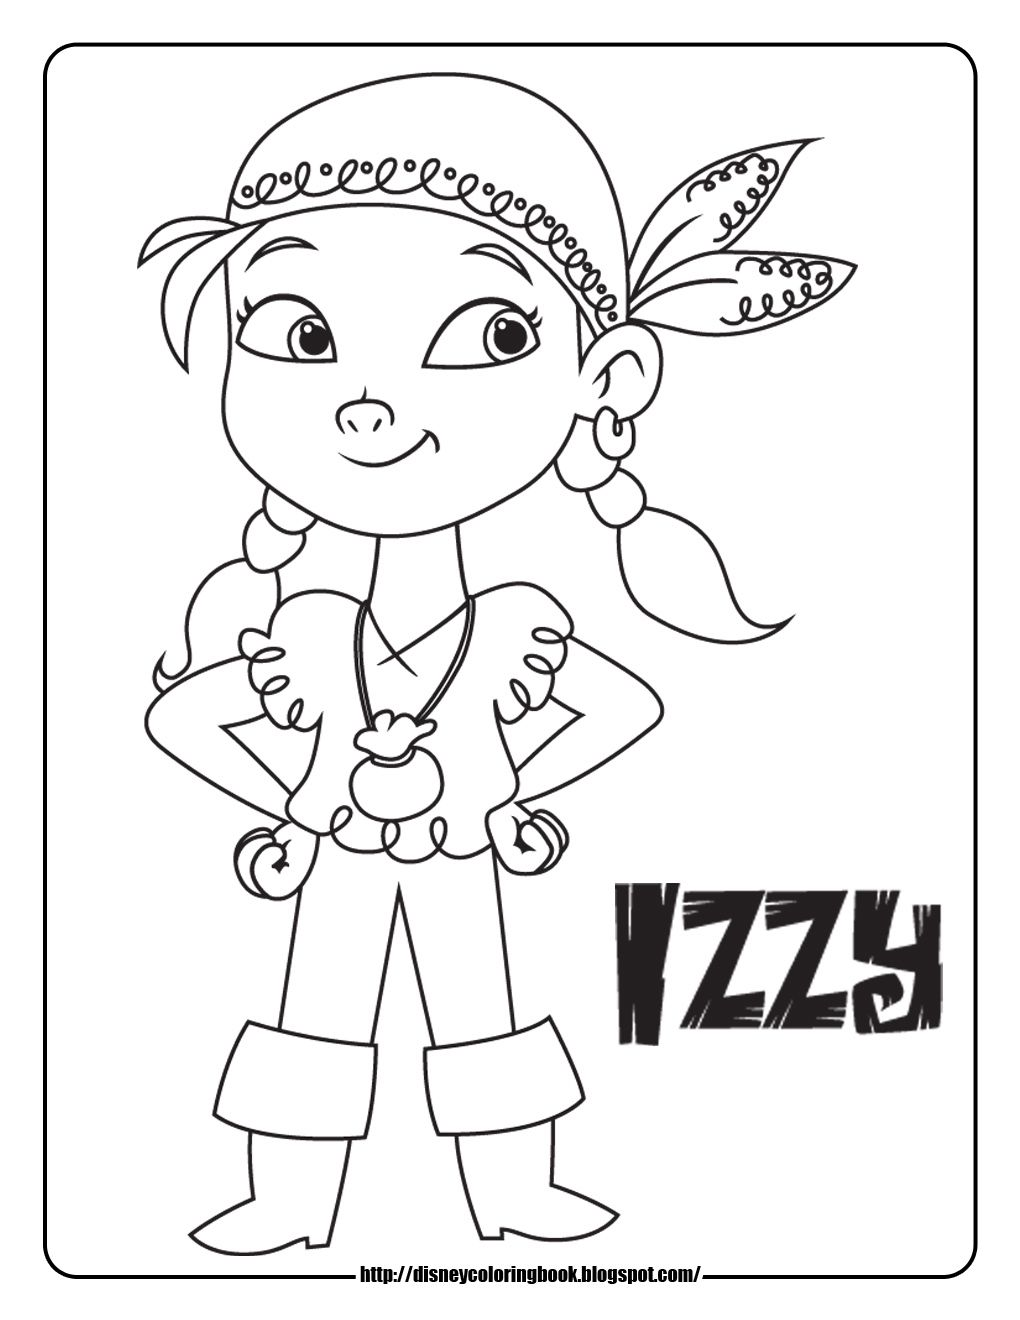 Coloring Pages Girl Pirate Coloring Pages 1000 images about coloring pages on pinterest doc mcstuffins free printable and disney pages